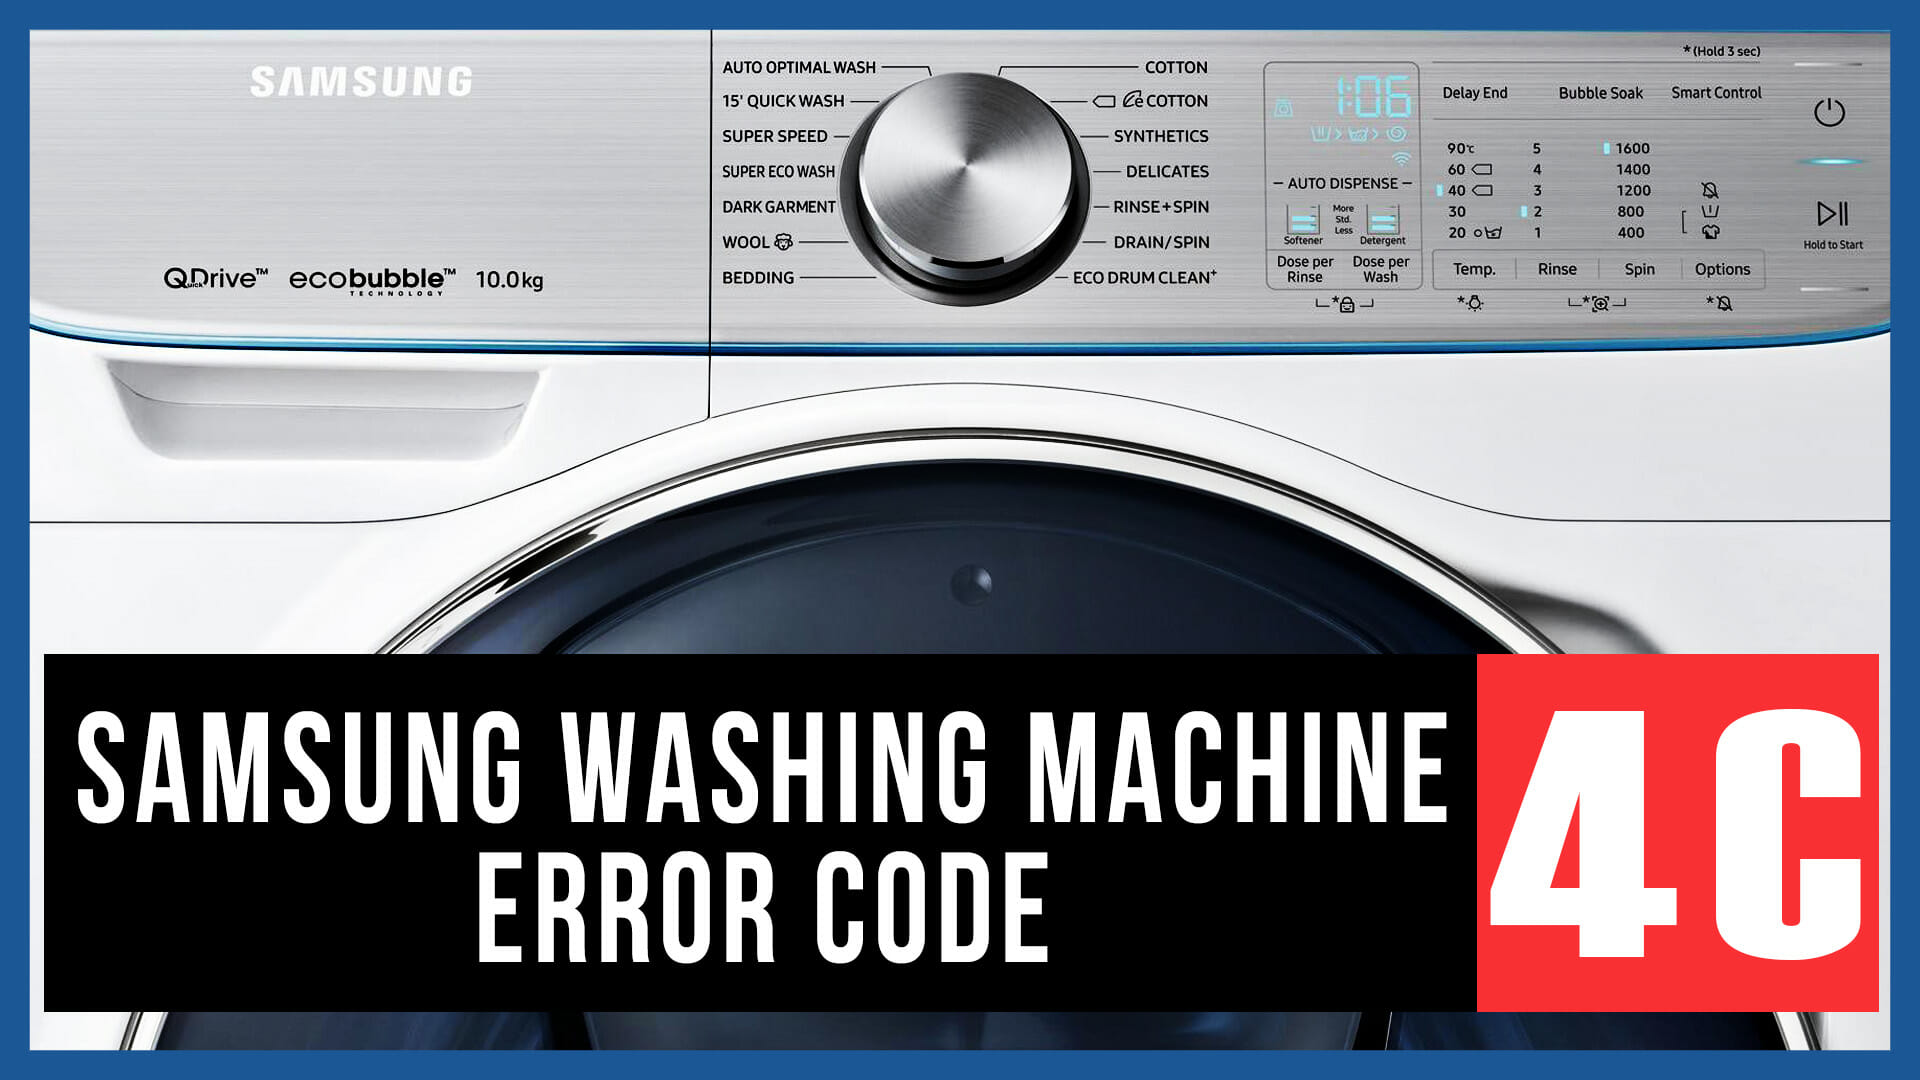 Samsung washing machine error code 4C